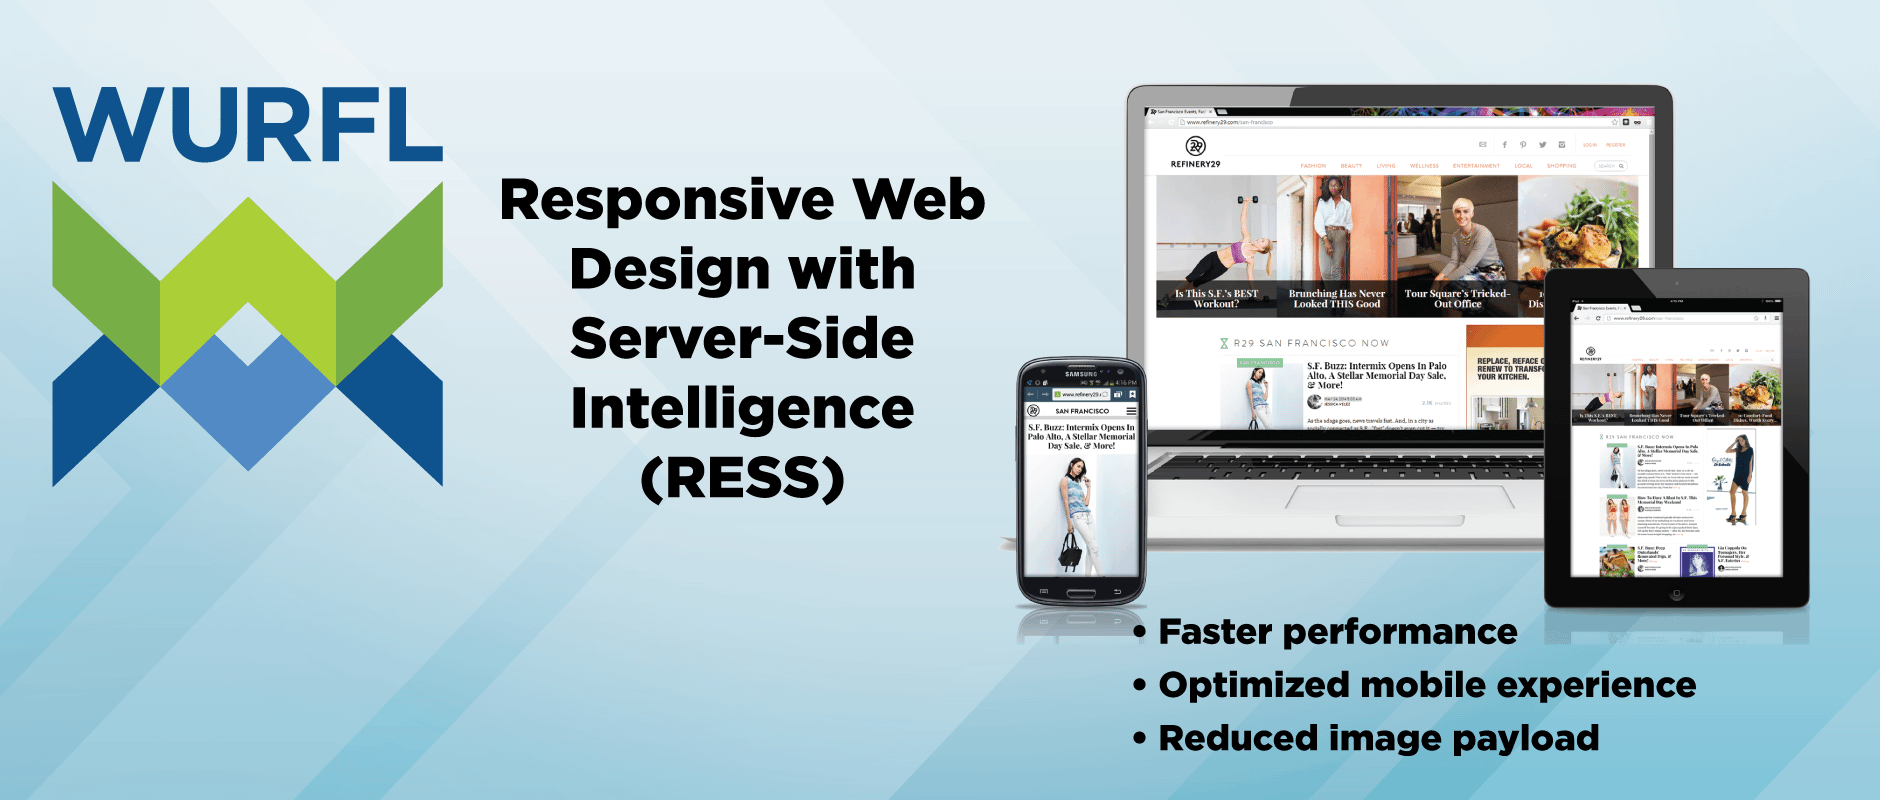 RESS Responsive Web Design with Server Side Detection